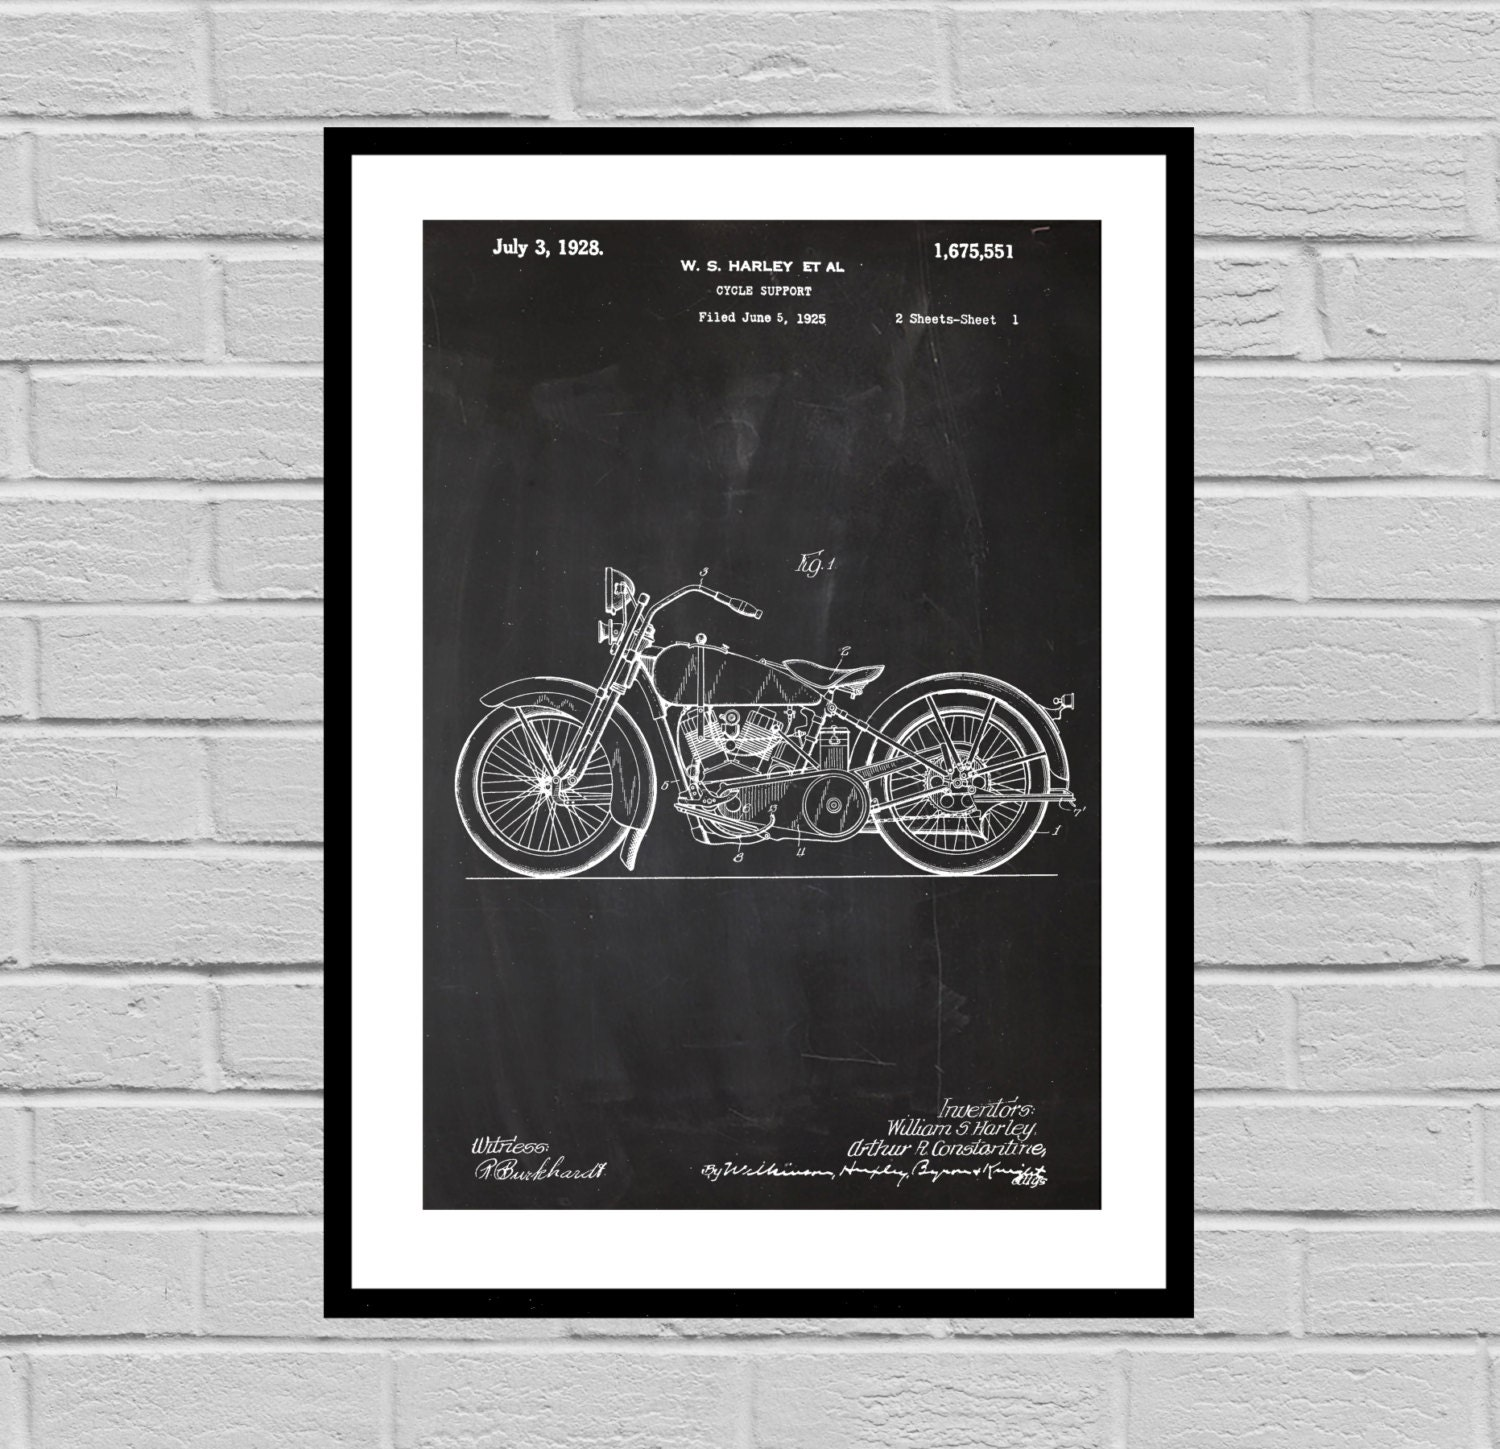 Harley Davidson Motorcycle Blueprint Patent Poster, Wall Art Poster, Harley  Motorcycle Print, Wall Art Poster, Patentprints, Harley Art